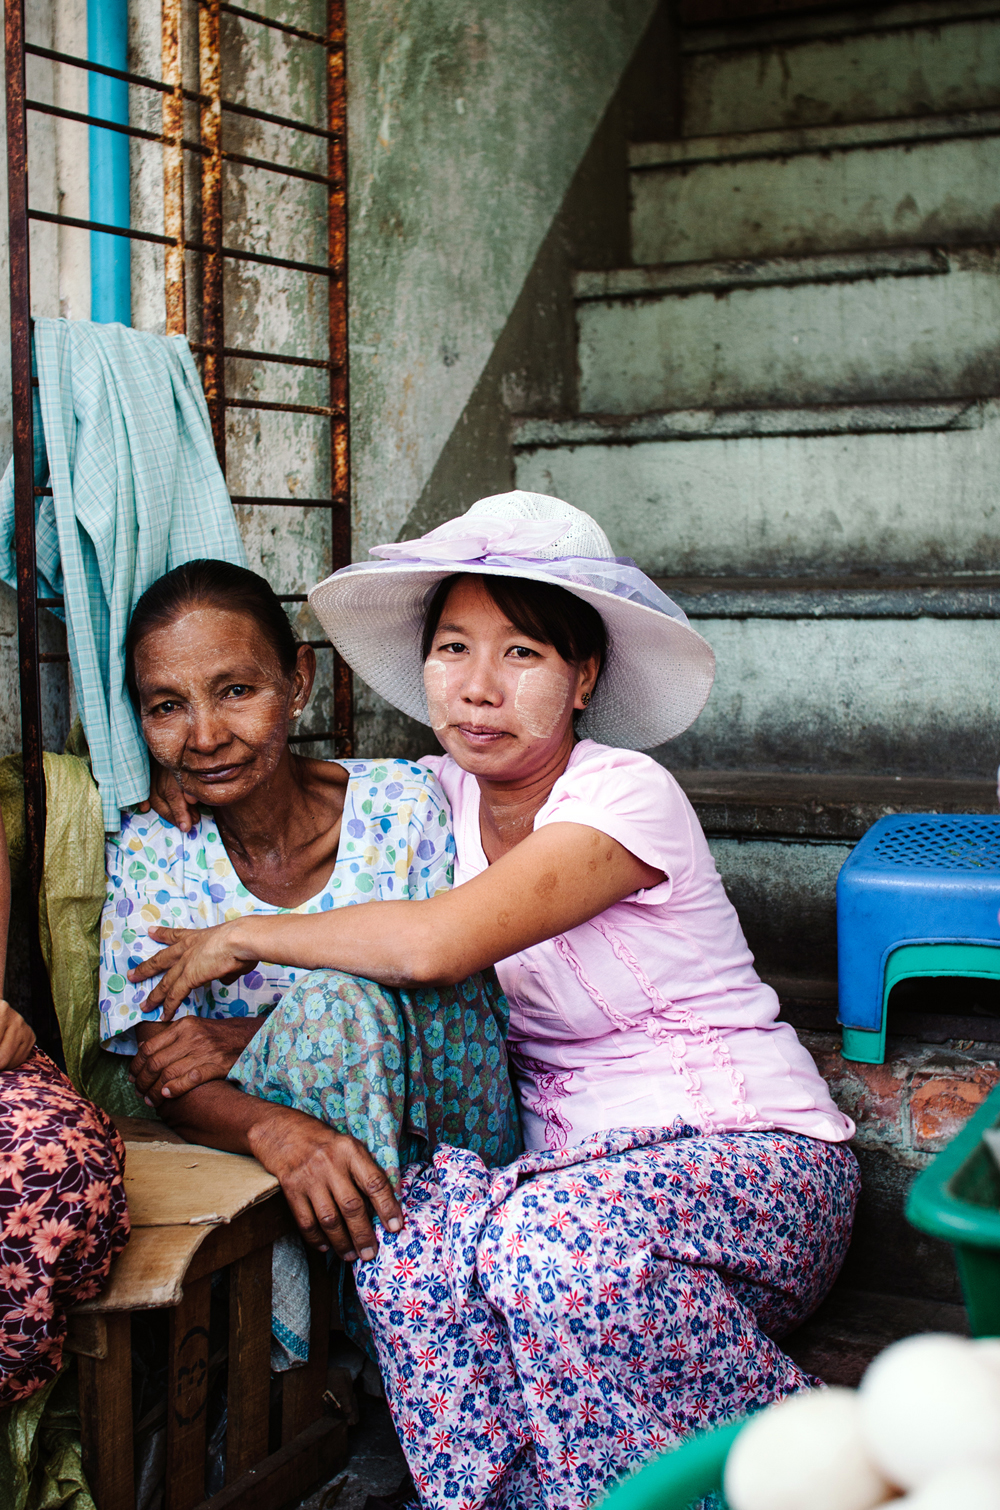 The government of Myanmar currently recognizes 135 distinct ethnic groups, most originating from China, India, or Nepal.